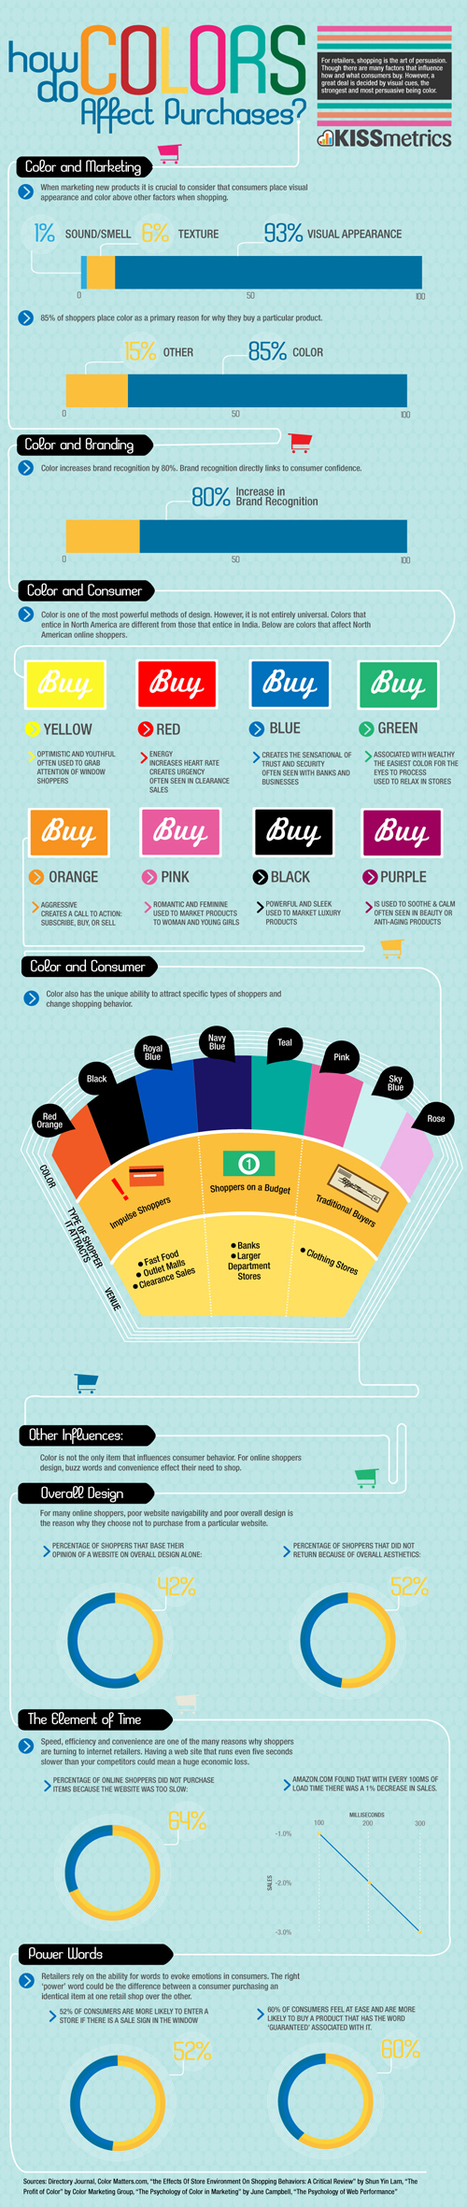 How do Colors Affect Purchases (infographic) | MarketingHits | Scoop.it